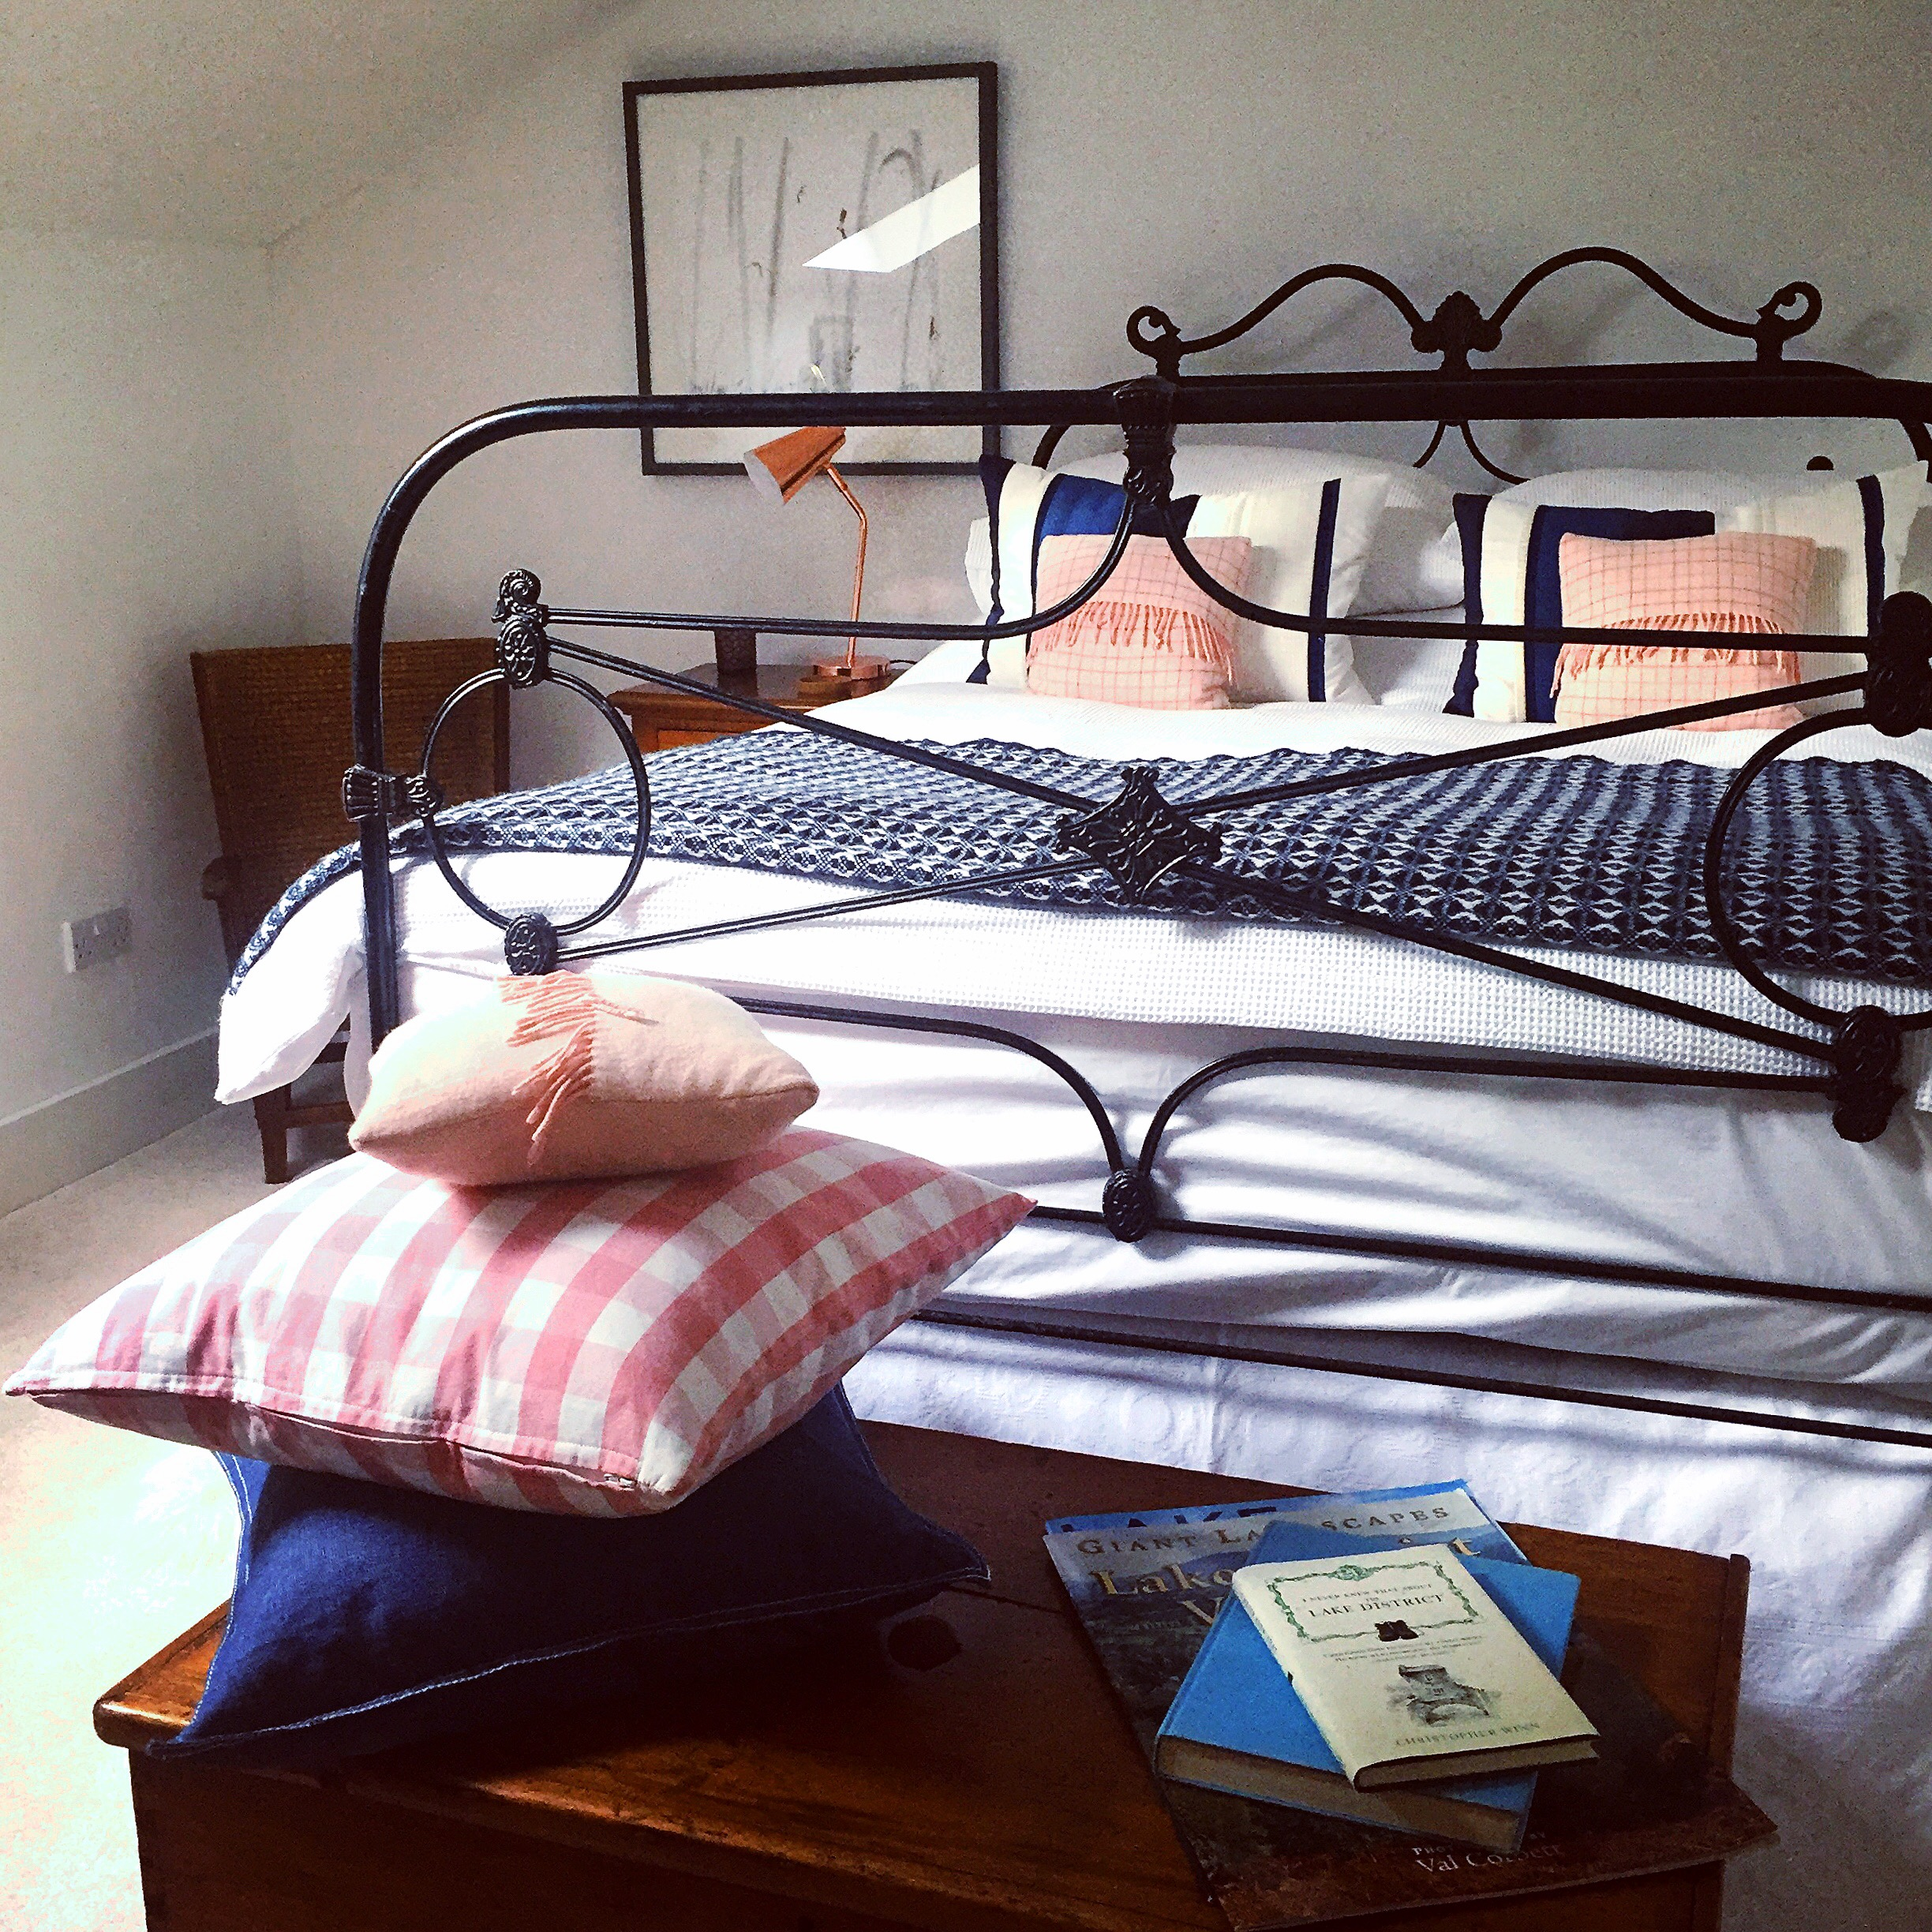 lake-district-bed-breakfast-cosy-airbnb.JPG